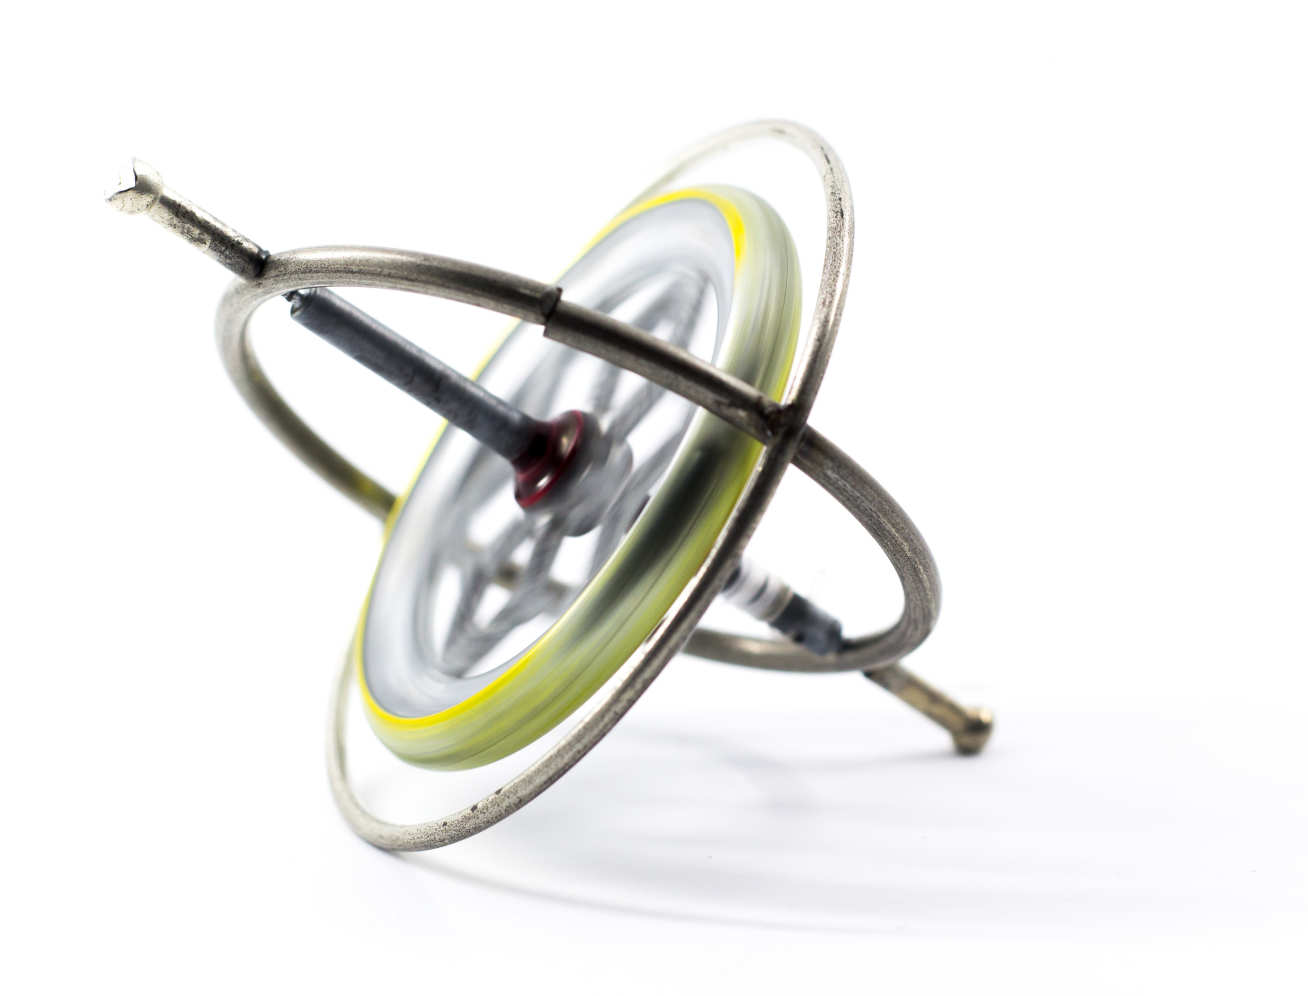 A toy gyroscope